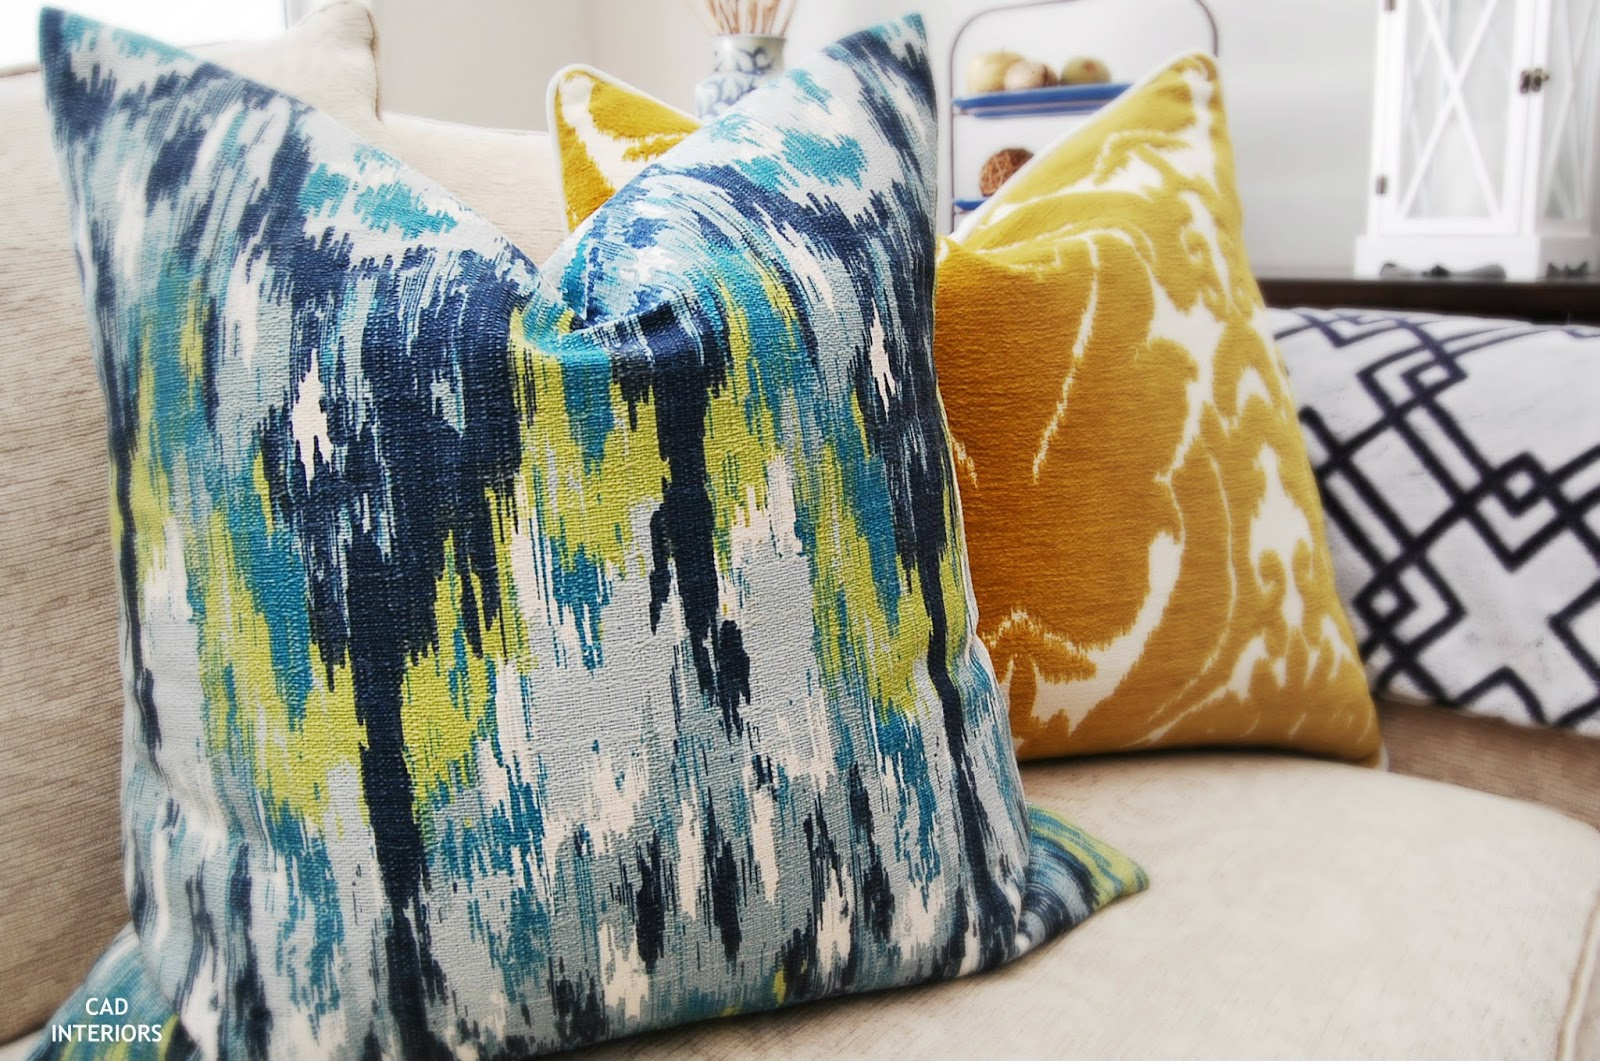 CAD INTERIORS pillows ikat fabric eclectic indigo blue yellow green teal turquoise lime transitional interior design decorating home accessories